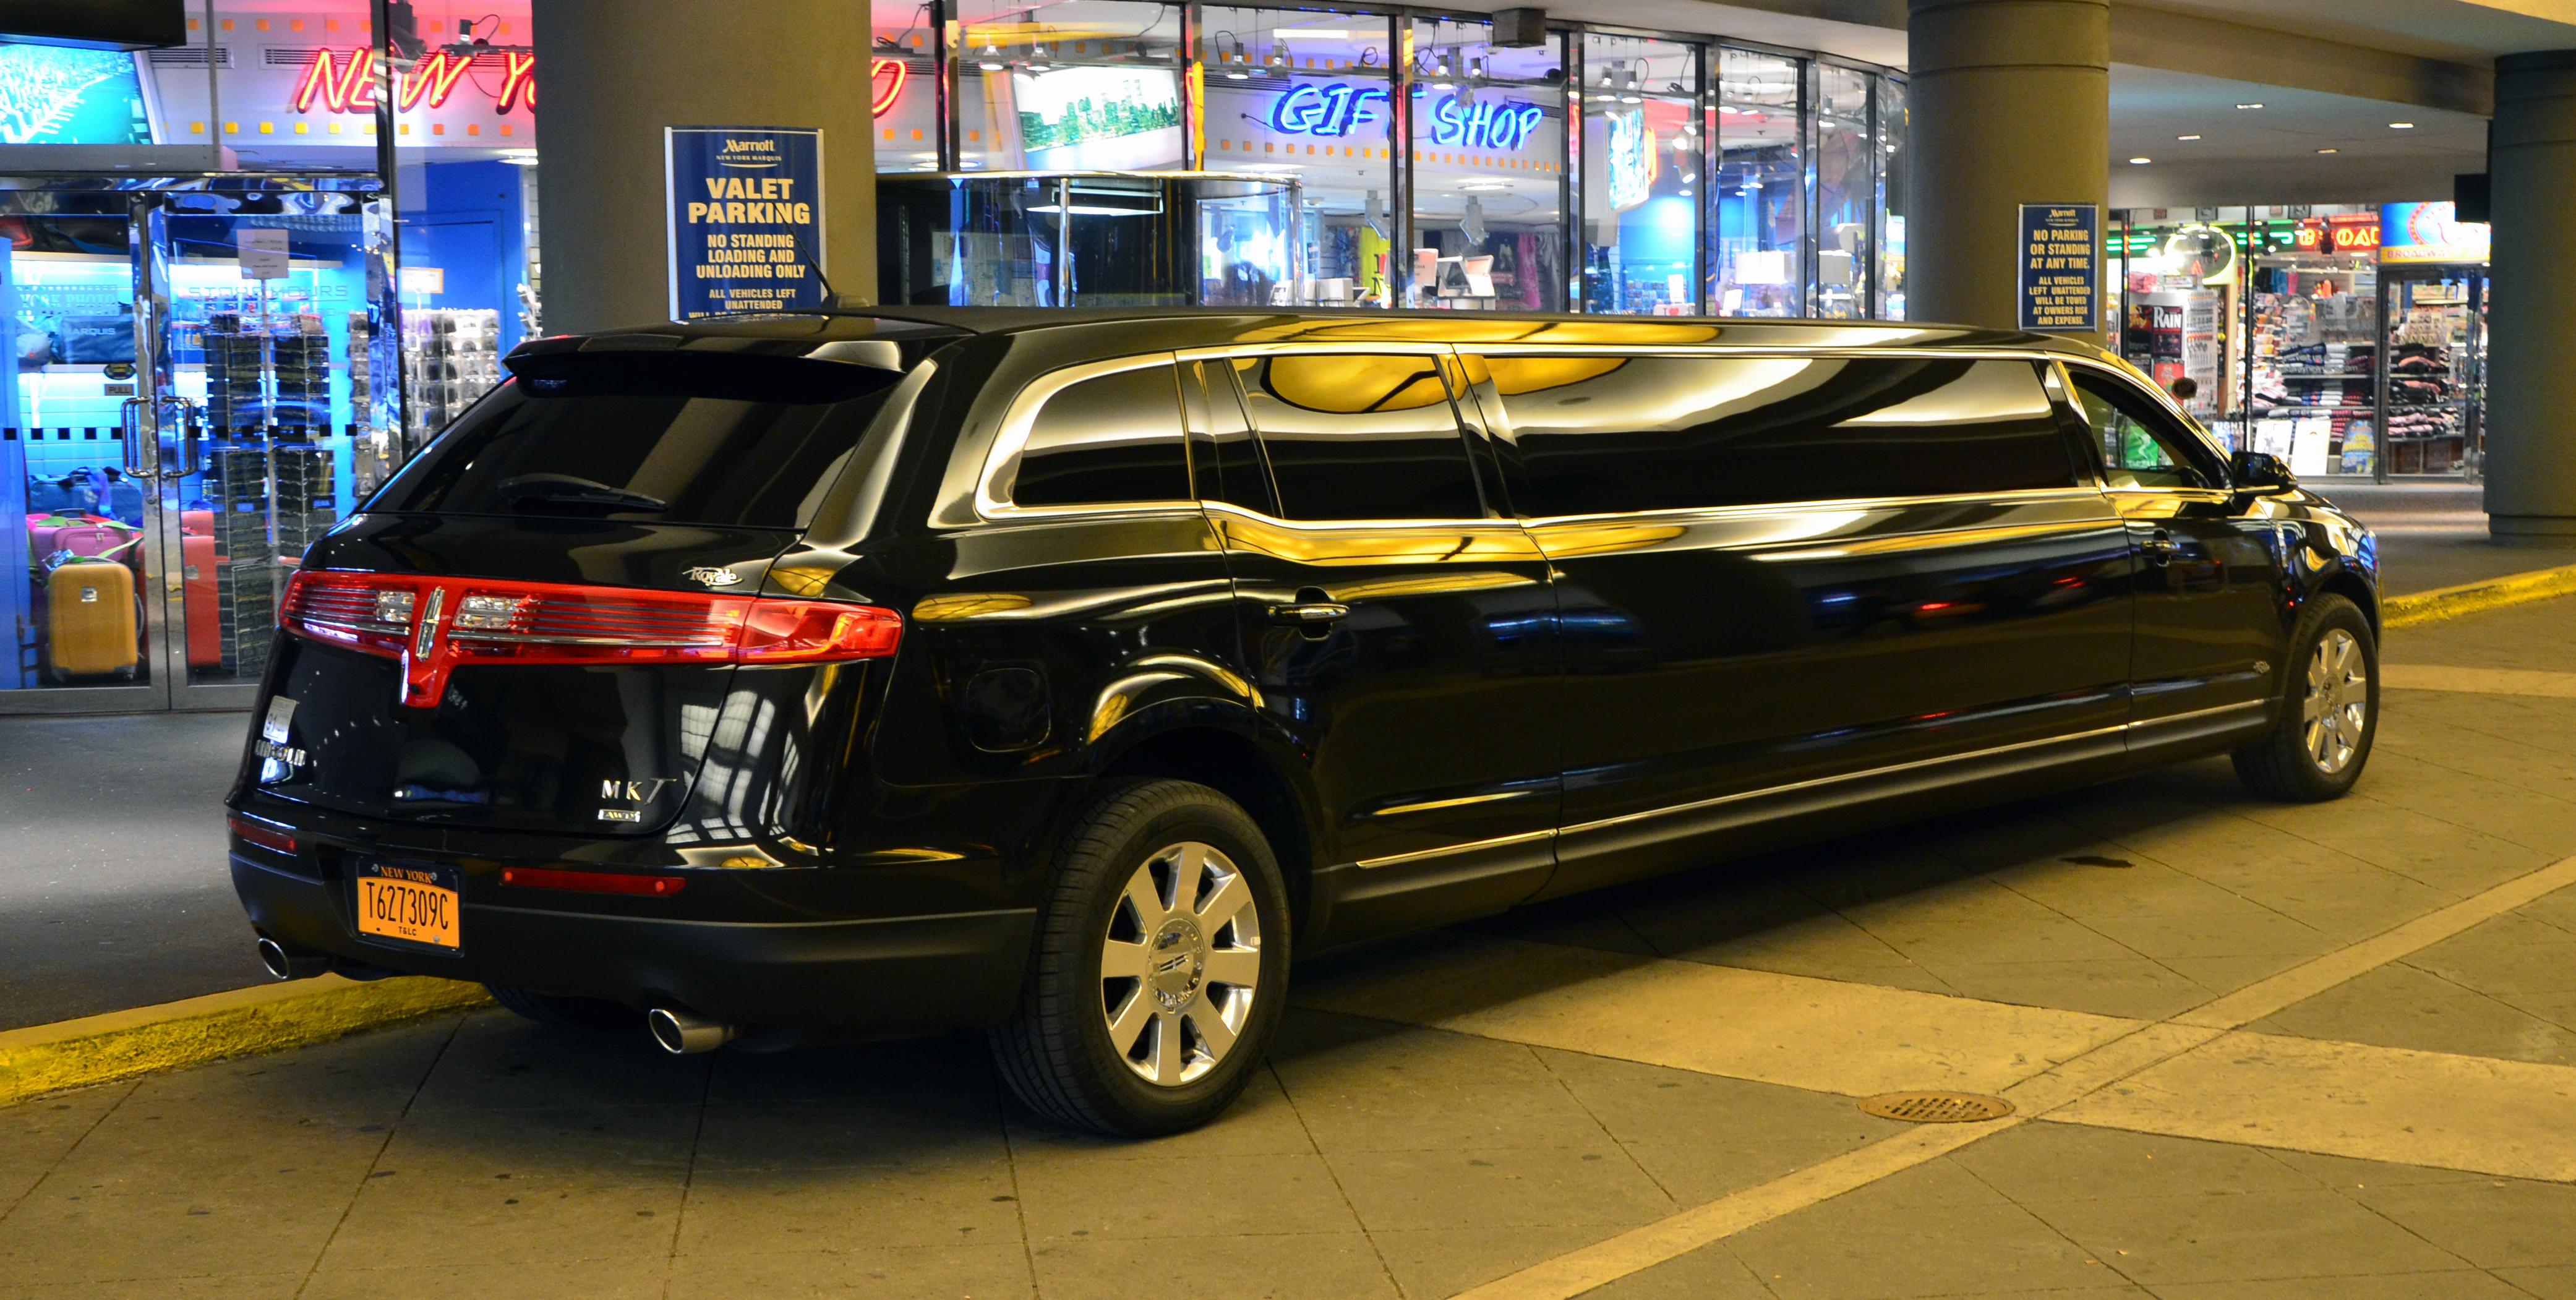 rodar is for pictures para featured oct on pinterest mkx m category the by automobiles author y sale added pin lincoln mkt in model confort image sica car